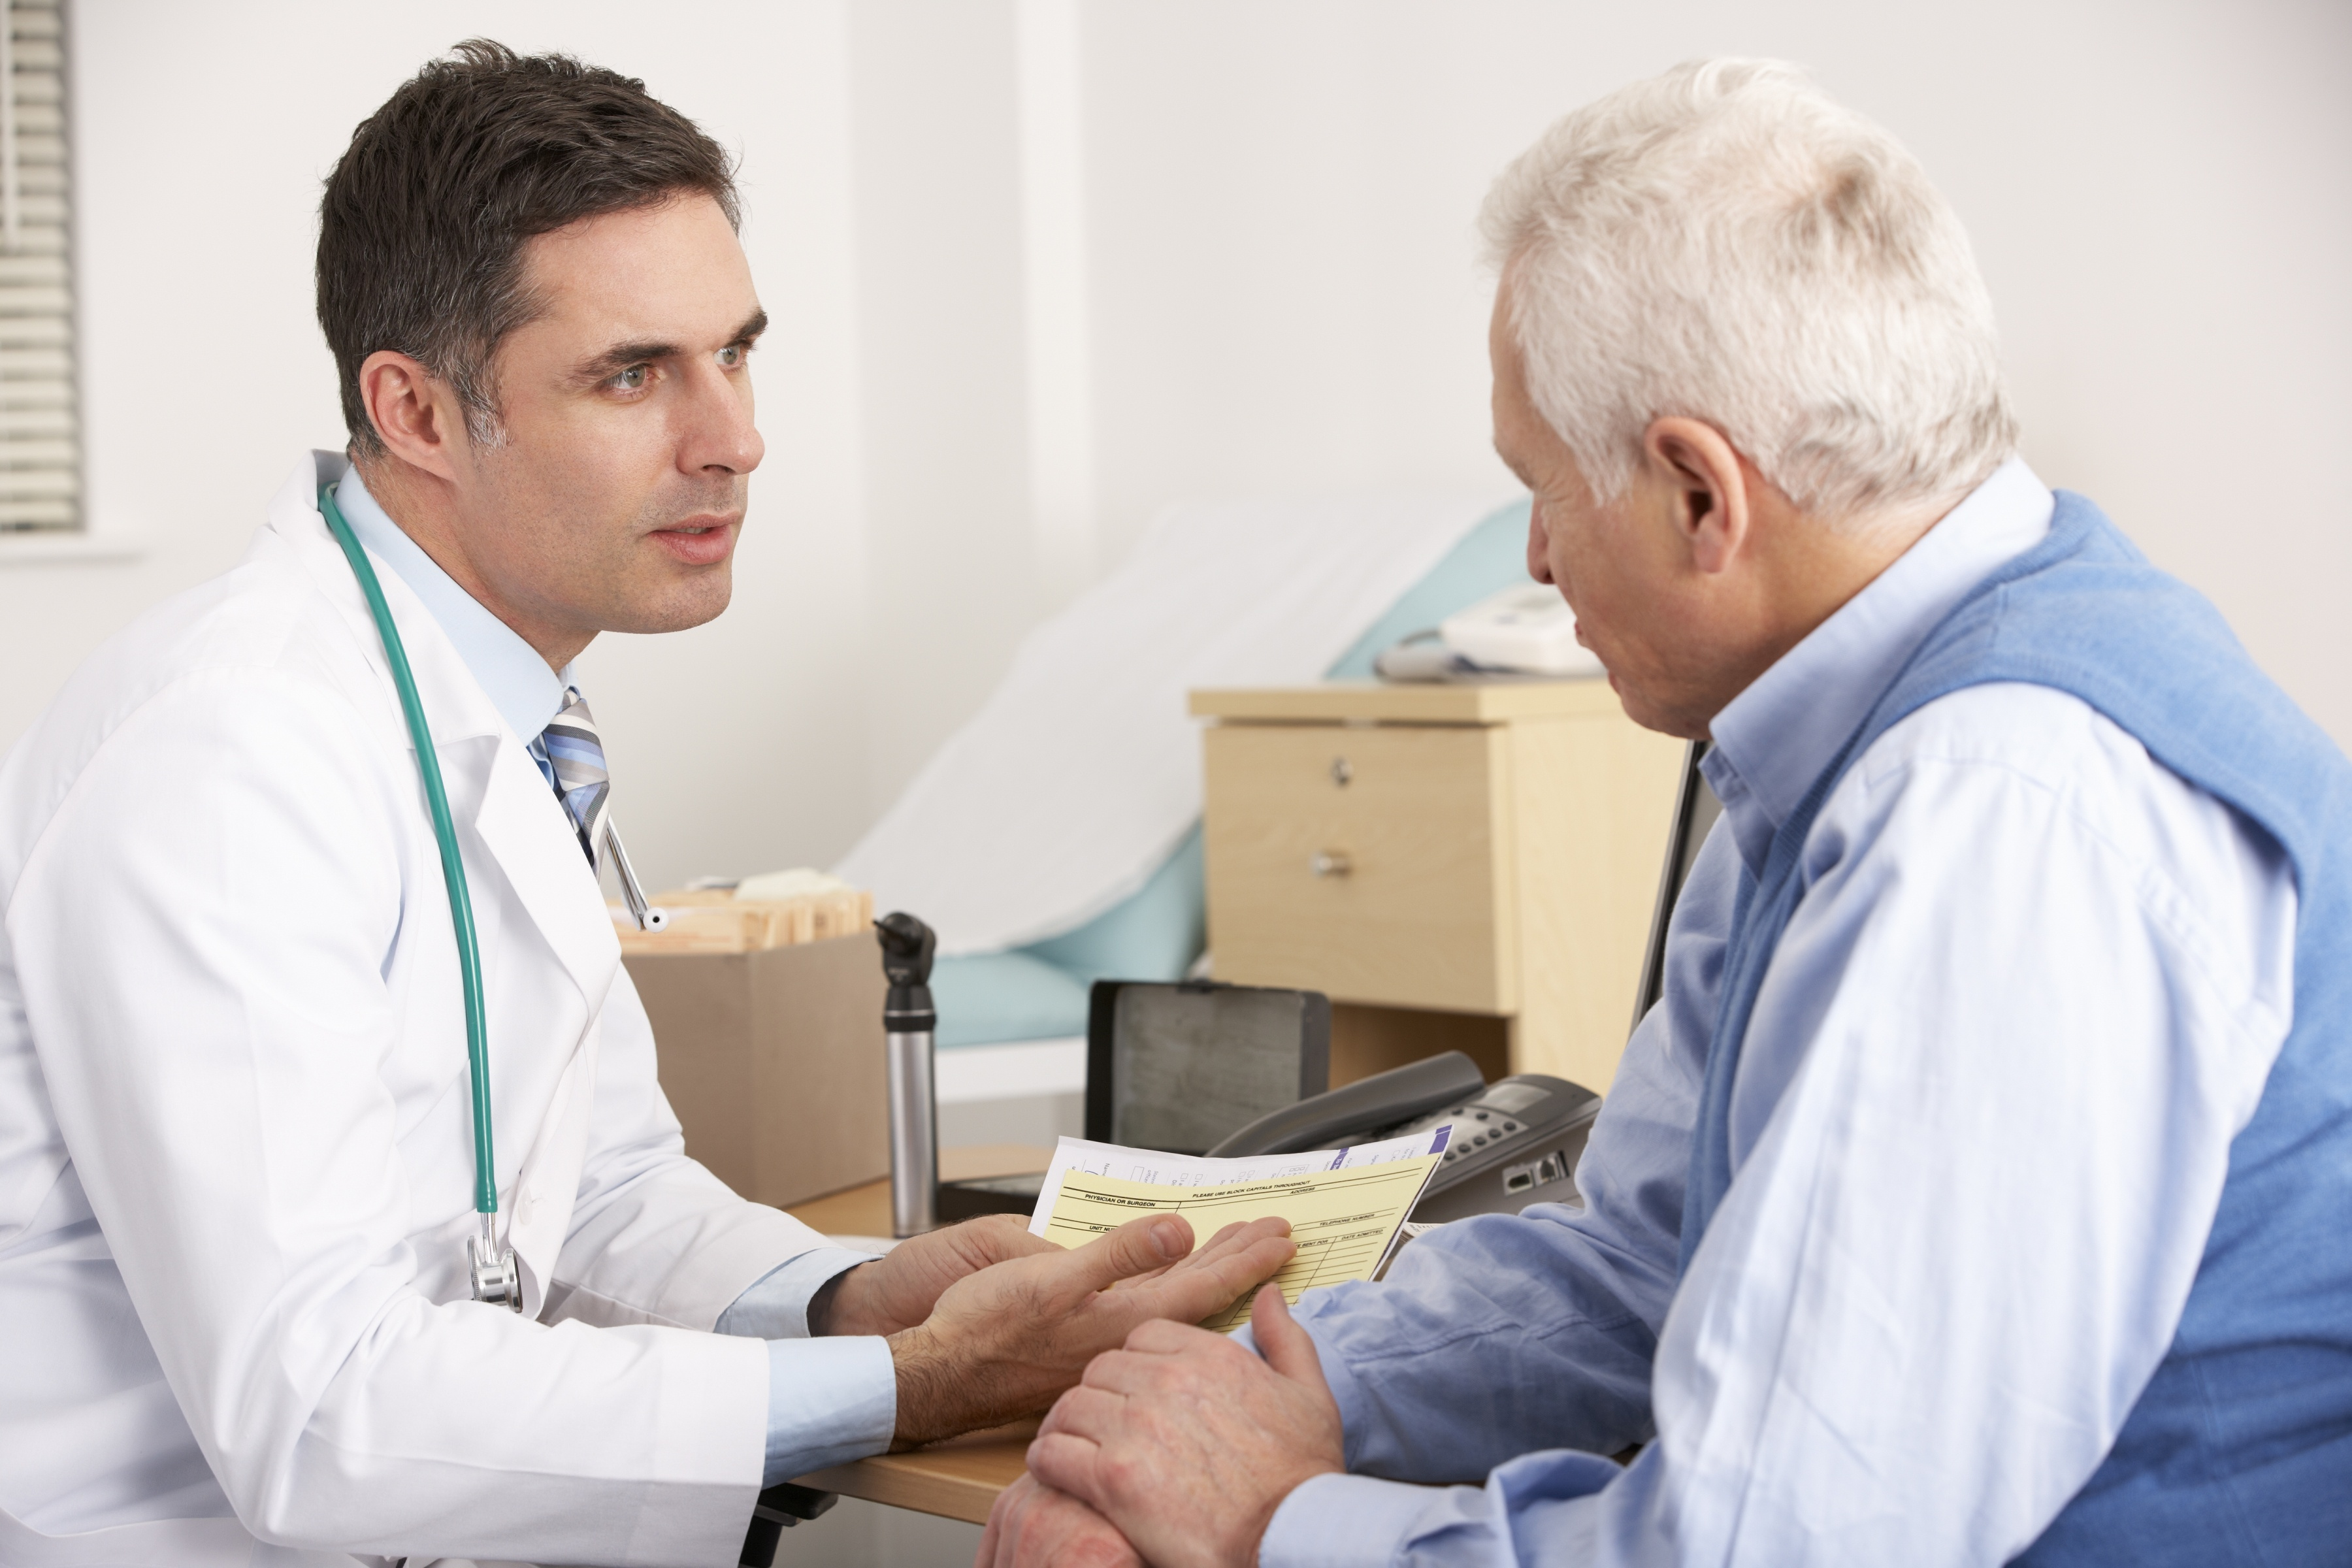 Starting_Alzheimers_Treatment_Early_May_Be_the_Key_to_Prevention.jpg